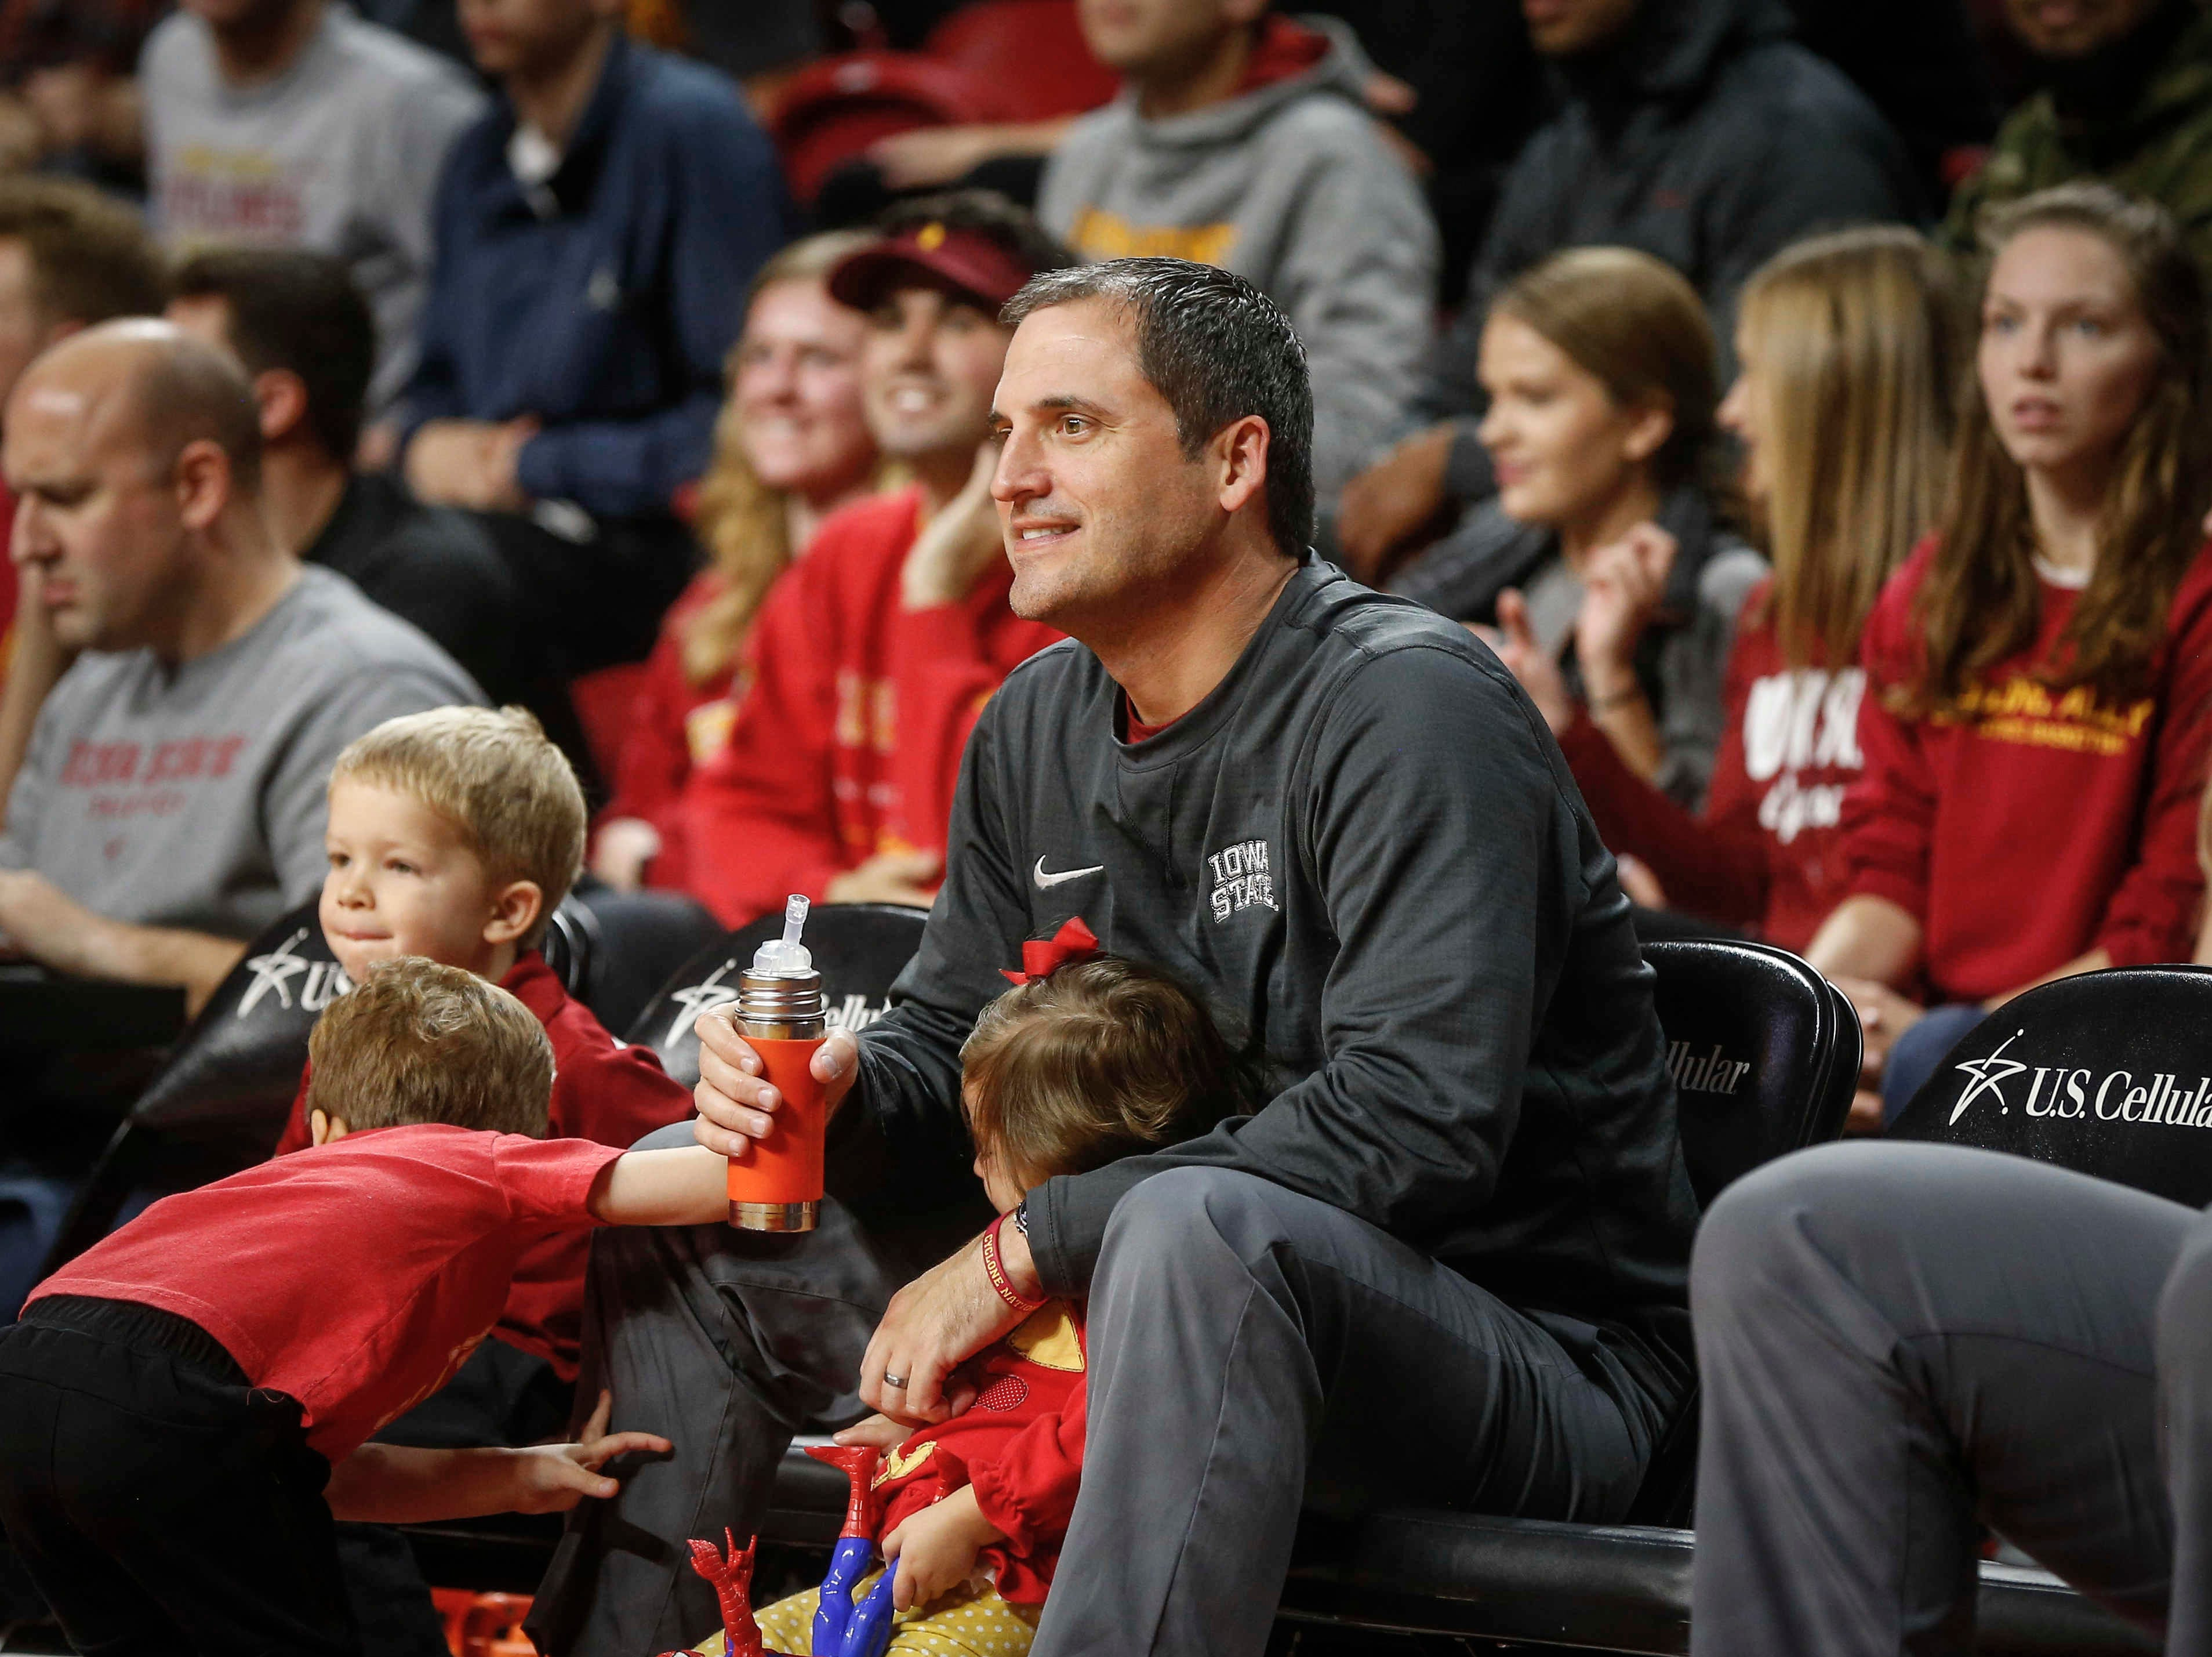 Iowa State head men's basketball coach Steve Prohm watches the shooting competition from the sideline during Hilton Madness at Hilton Coliseum in Ames on Friday, Oct. 12, 2018.